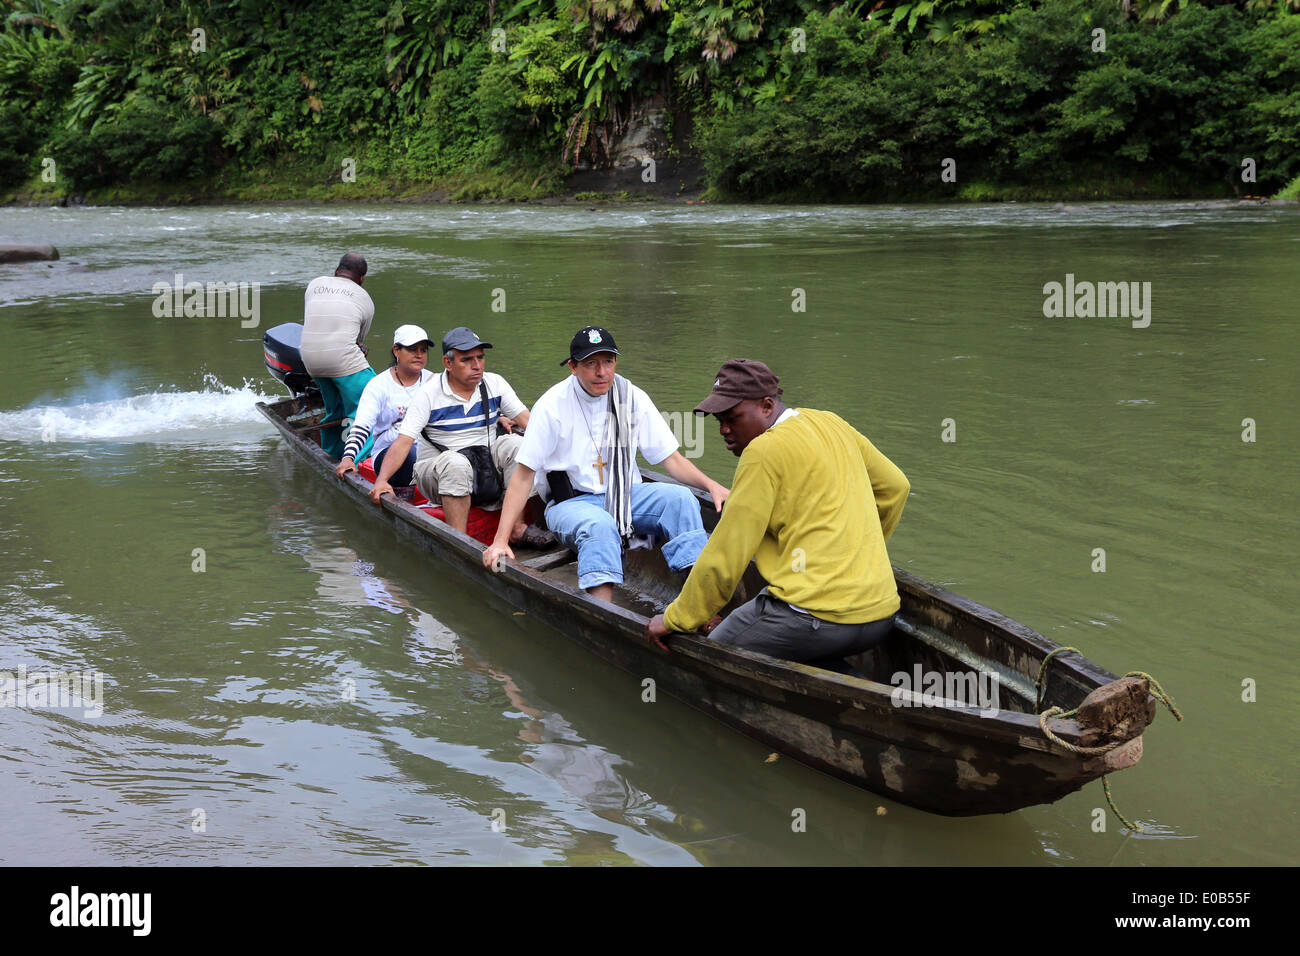 People in a dugout canoe on river Rio Baudo, Choco province, Columbia, Latin America - Stock Image